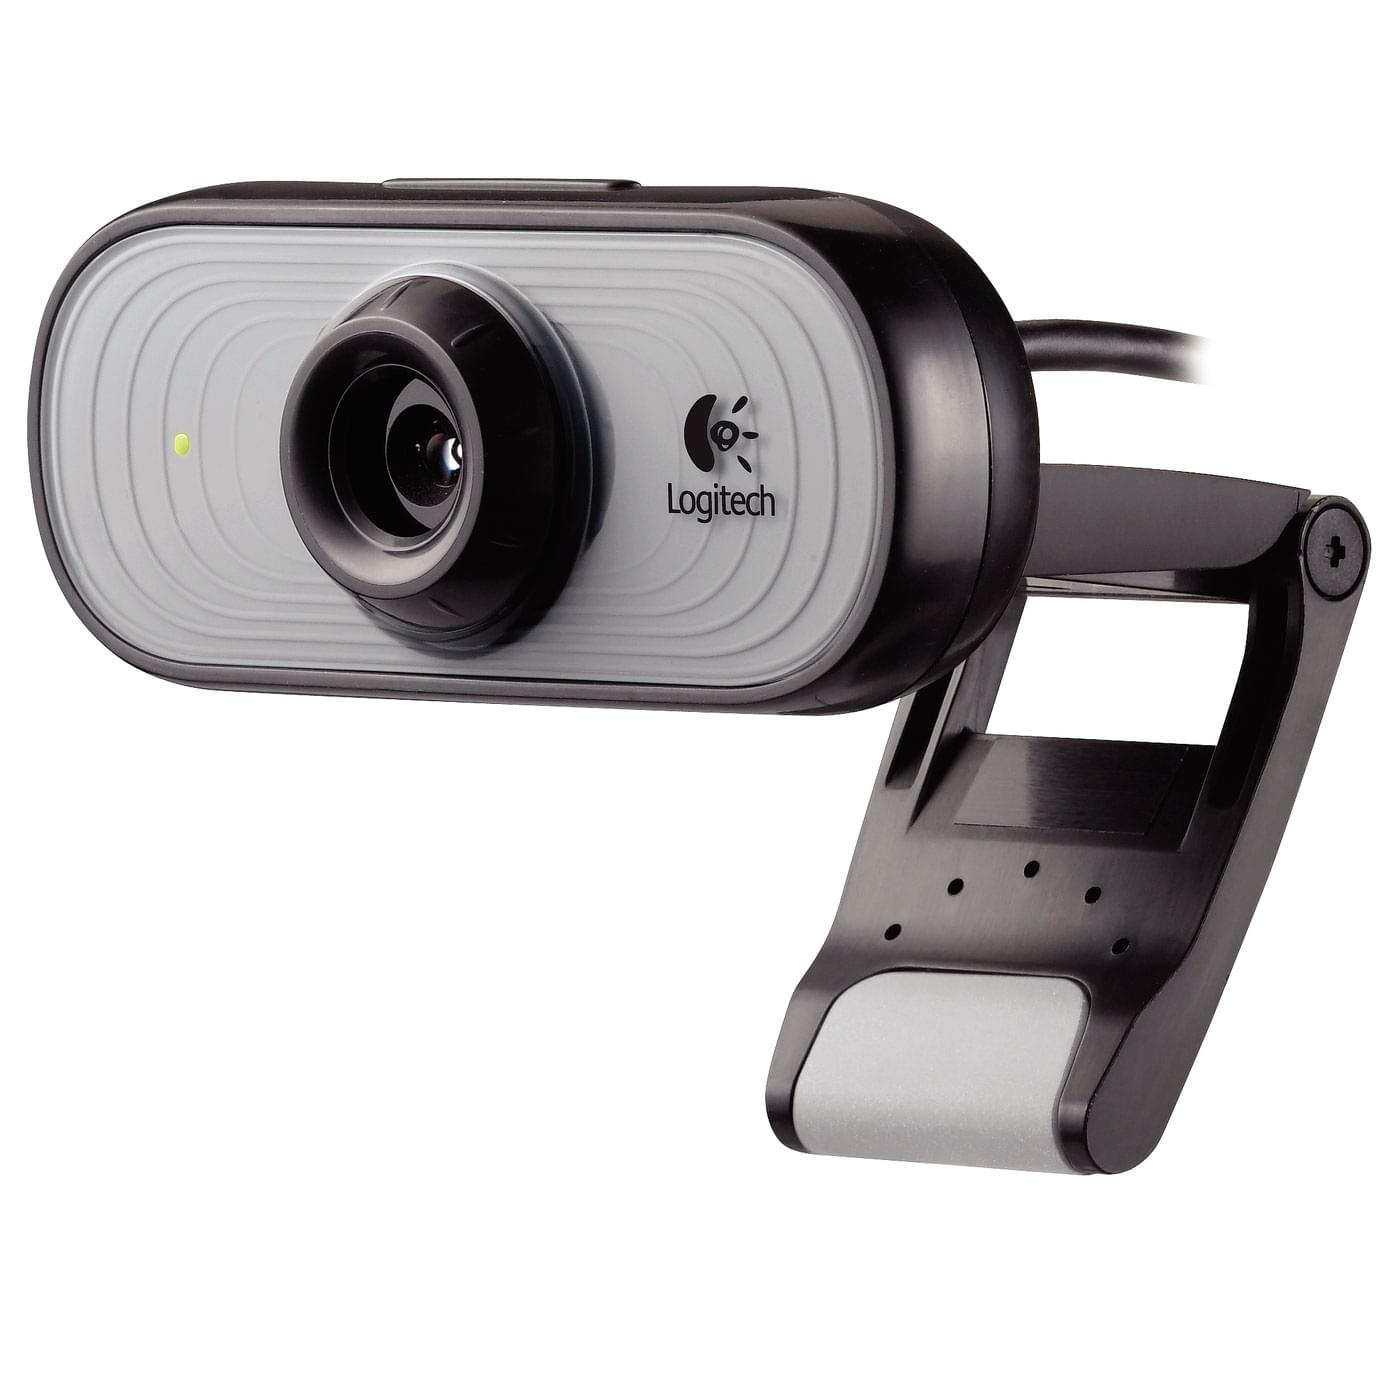 Logitech WebCam C100 - Caméra / Webcam - Cybertek.fr - 0